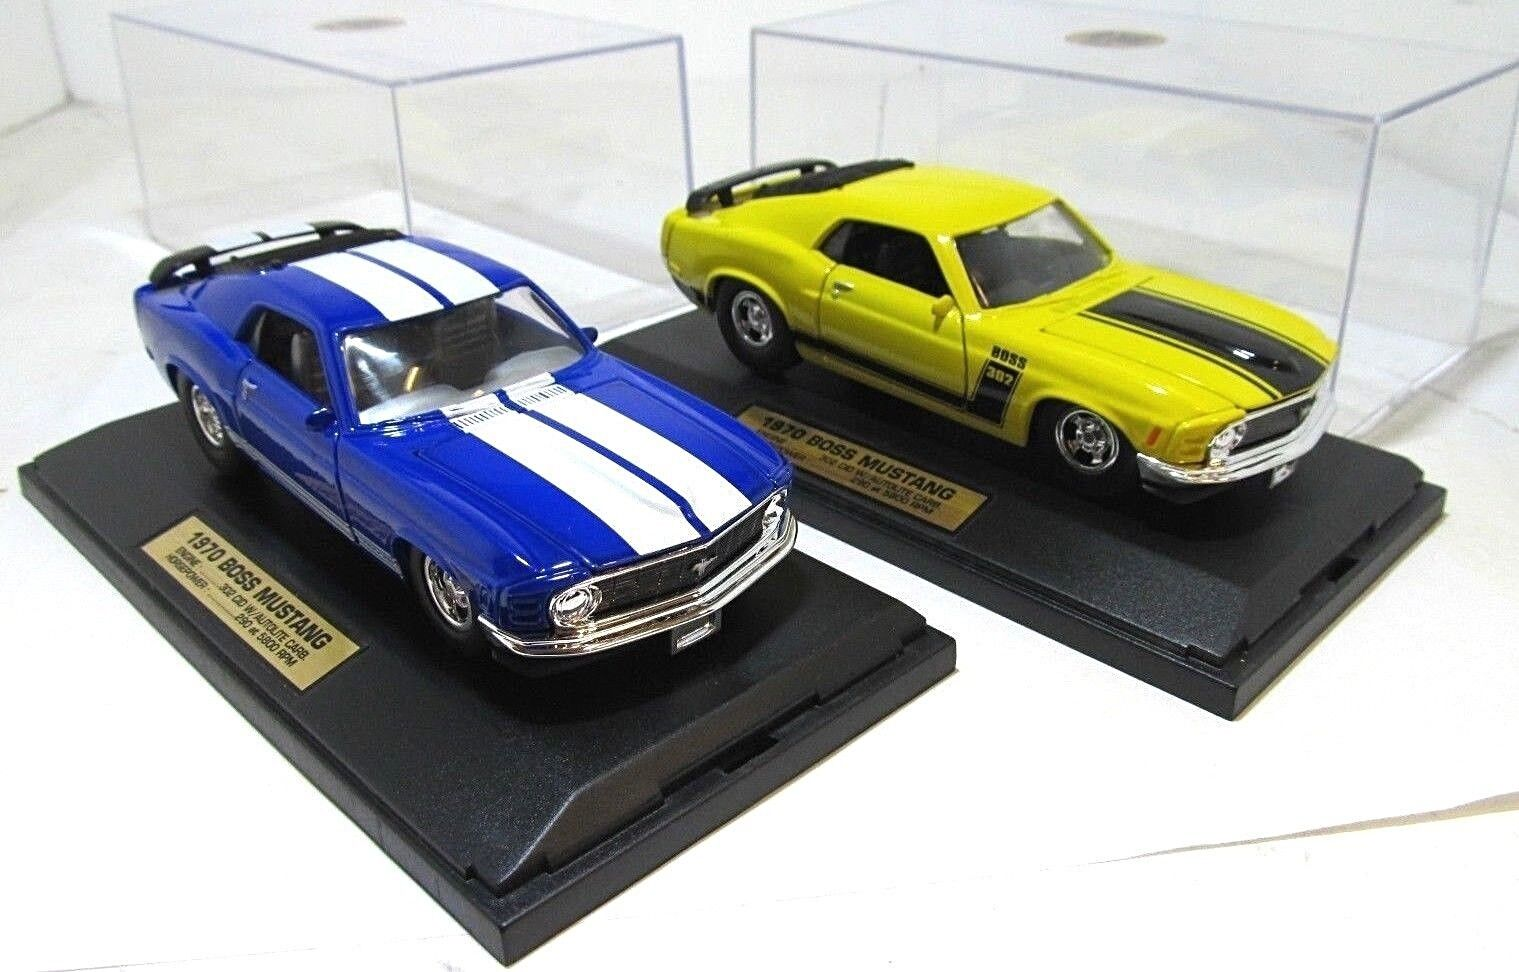 2 Tootsie Hard Body 1970 Boss Mustangs 1 10,000 10,000 10,000 in Display Cases 8e135c